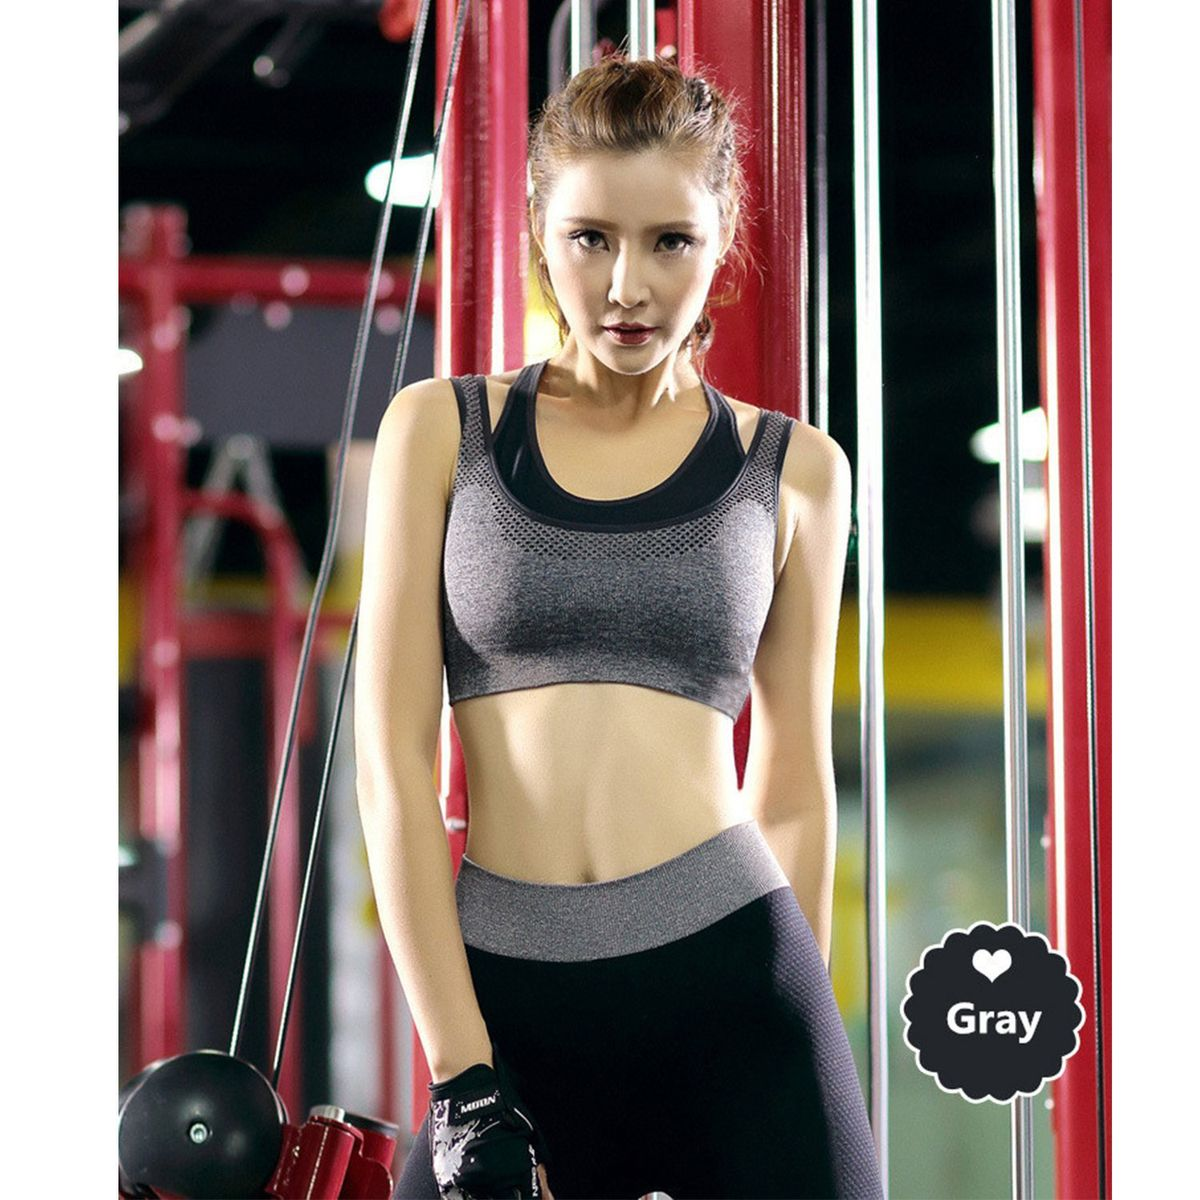 Womens Comfort Revolution Workout Fitness Sports Bras Fake Two Pieces Yoga Athletic Gym High Impact Underwire Padded Seamless Strap Racerback.-B078NG8PPG